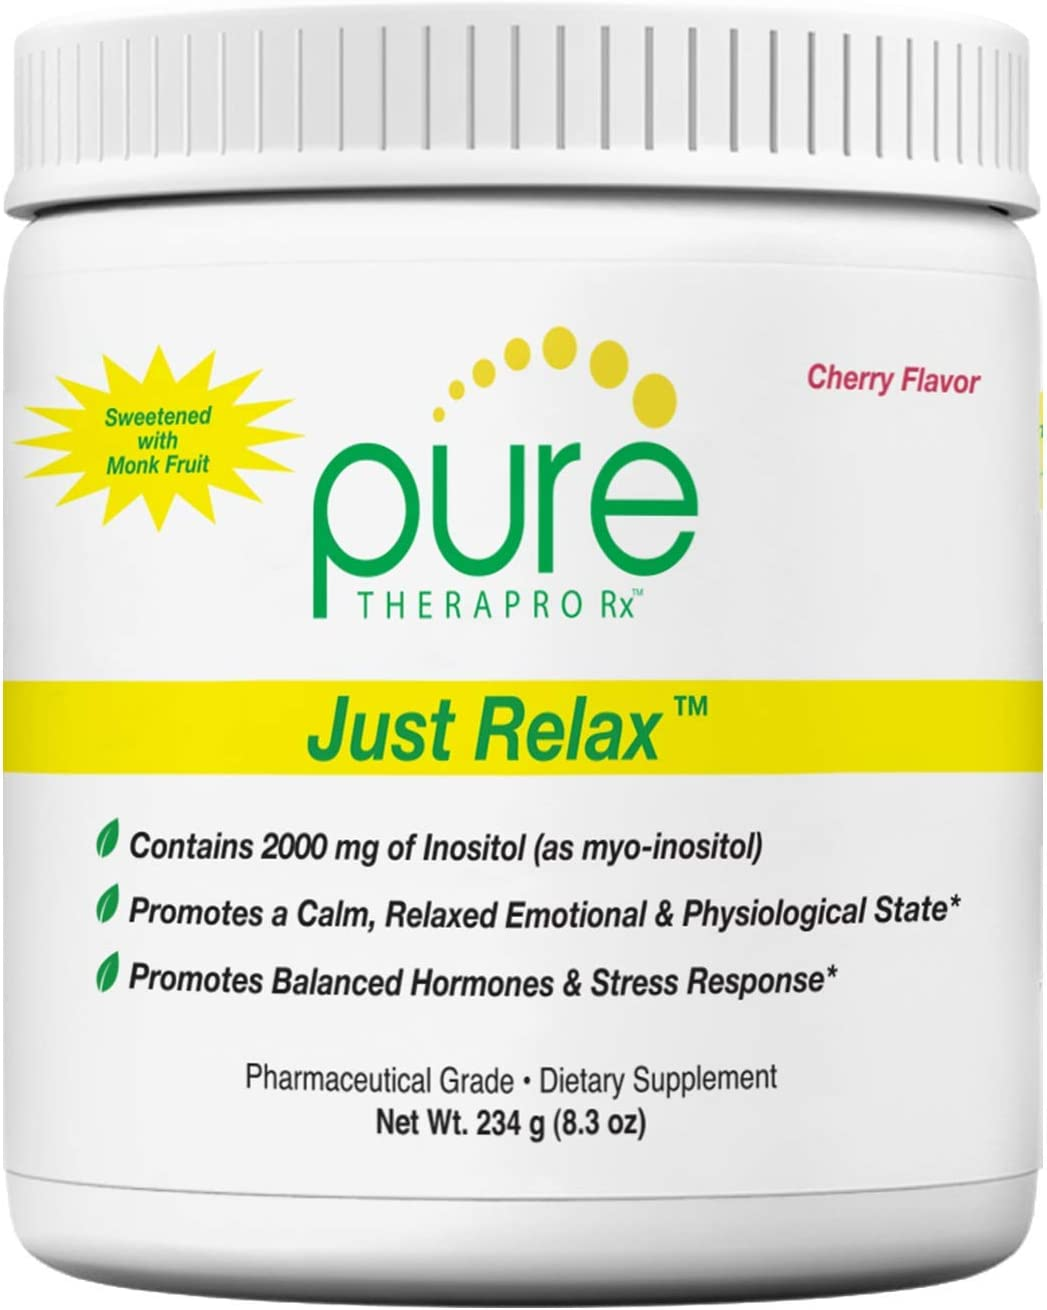 Just Relax – Cherry 60 Servings Supports Relaxed Mood, Healthy Blood Pressure, Emotional Wellness, Hormonal Balance* Myo-inositol Di-Magnesium Malate, GABA, Taurine, L-Theanine Suntheanine